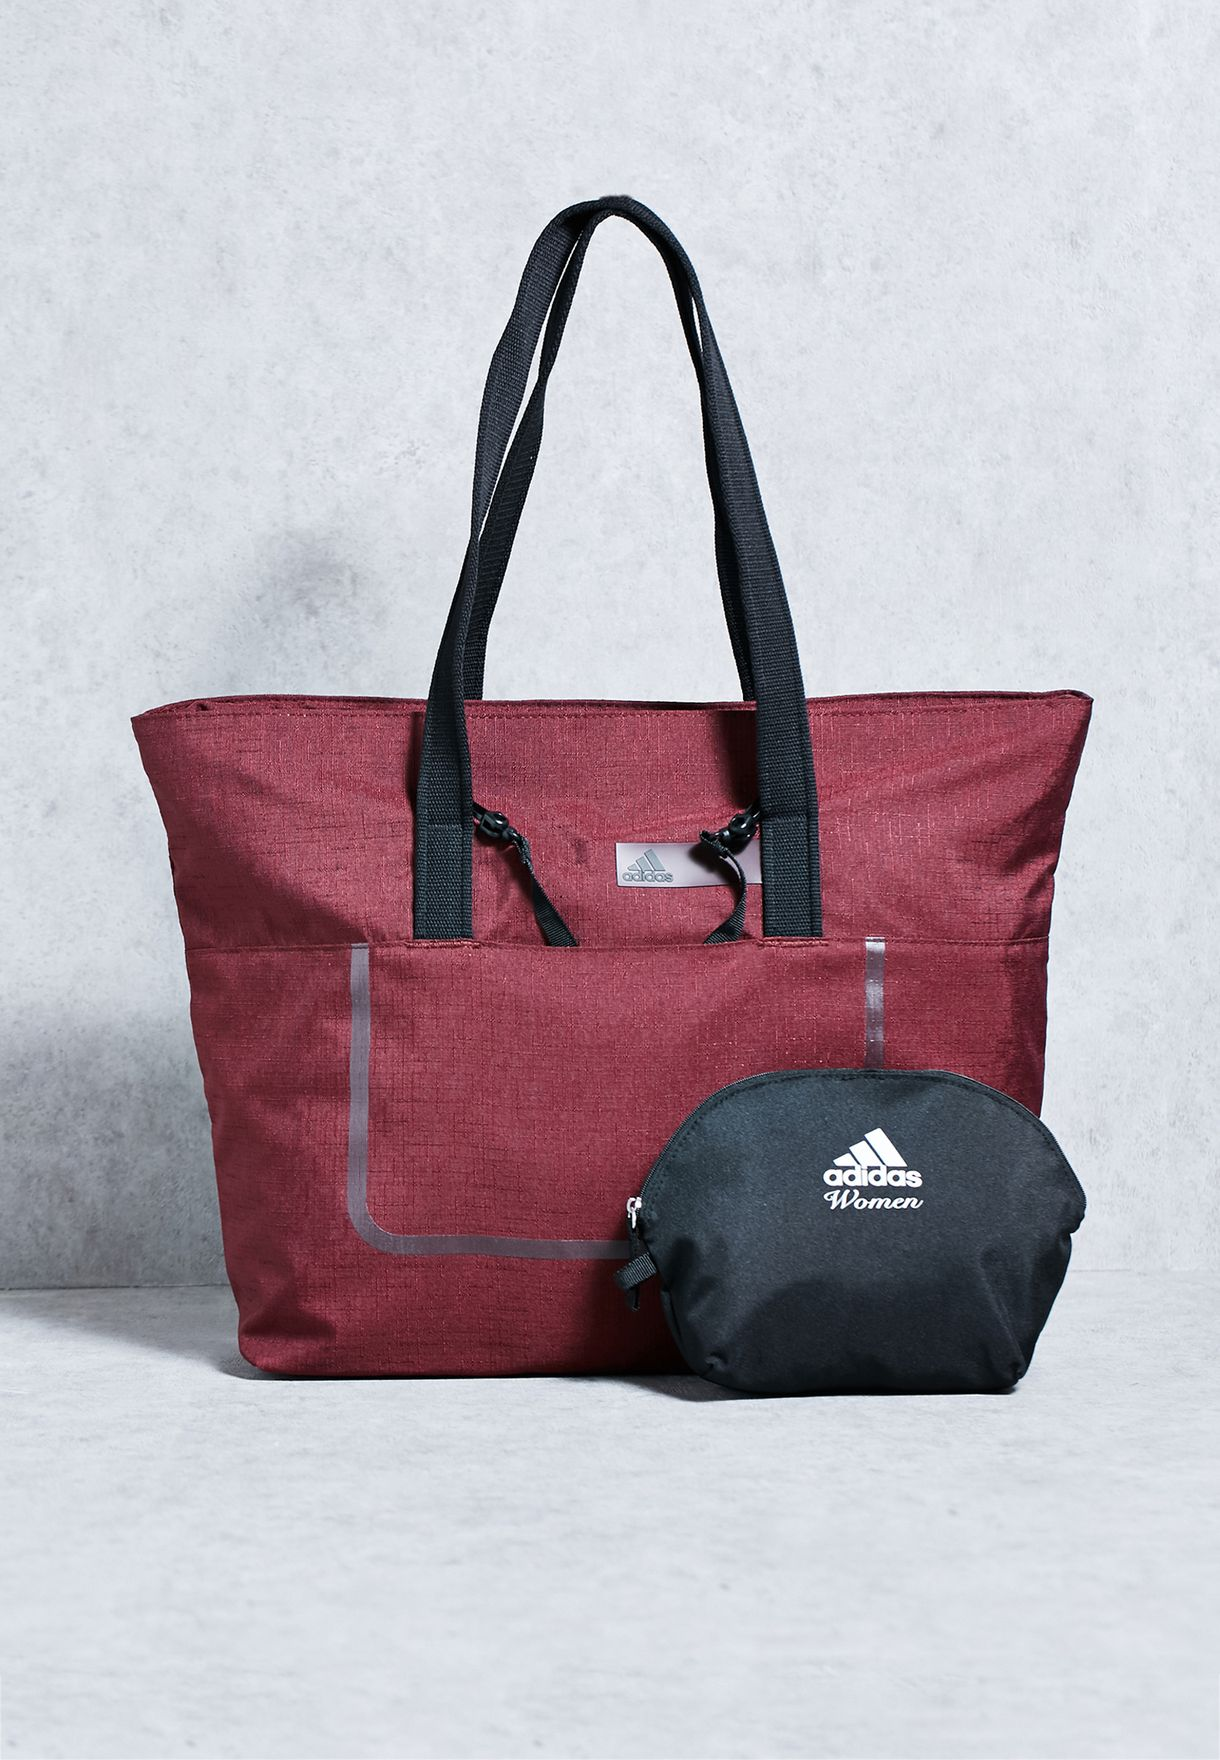 d5748e4c4d Shop adidas red Better Sol Tote S99726 for Women in Oman - AD476AC36VNR